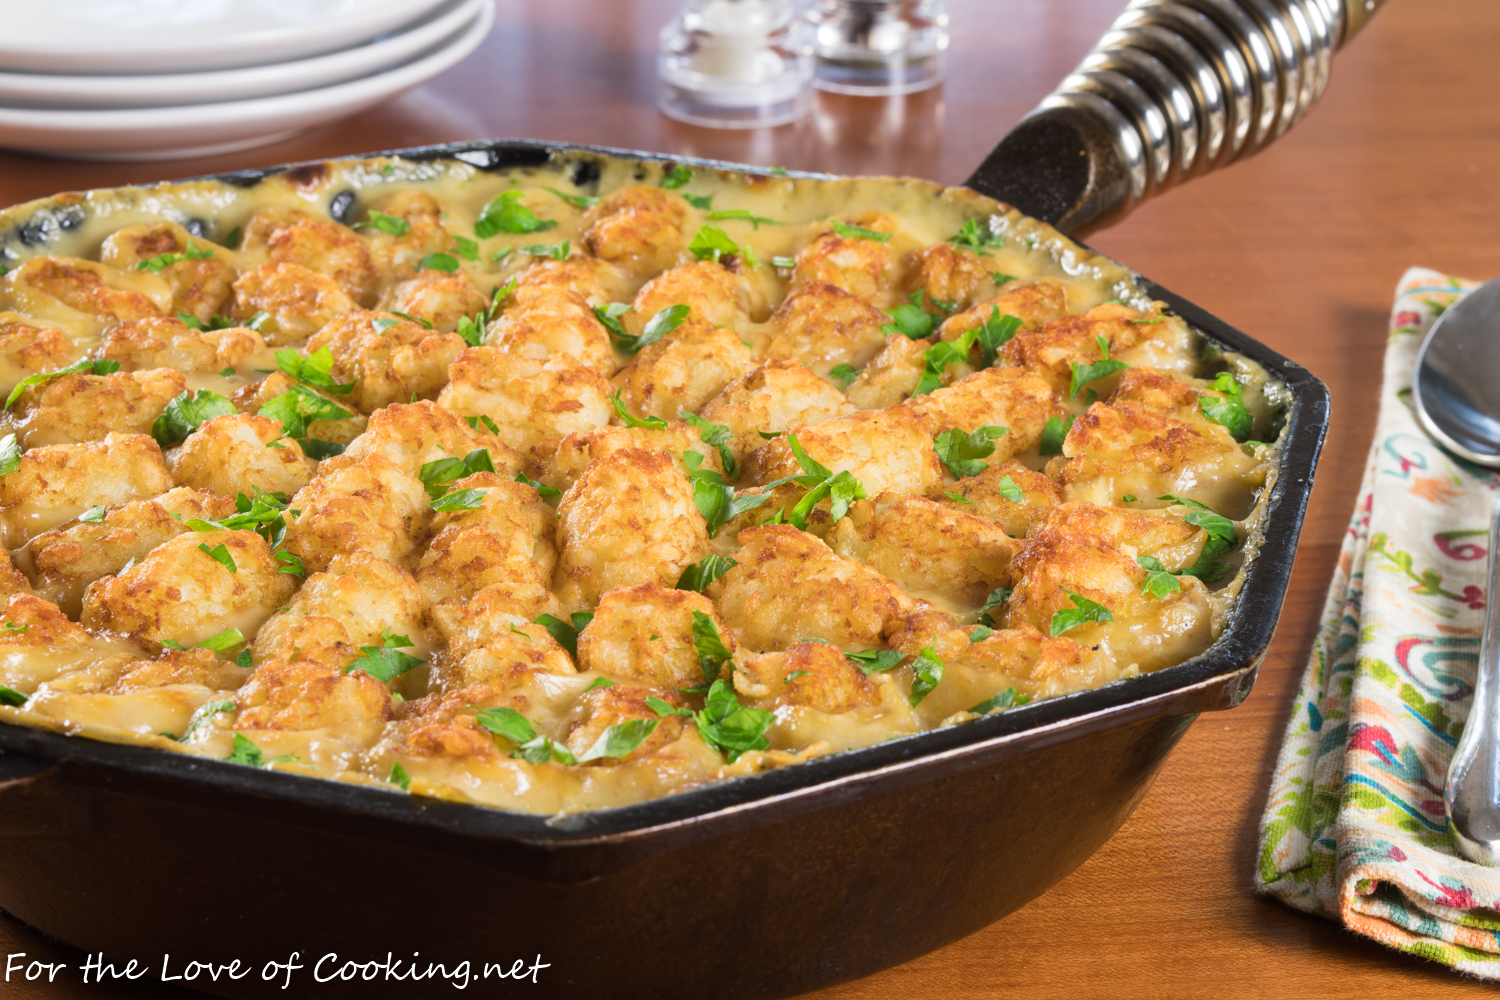 Skillet Tator Tot Chicken Pot Pie